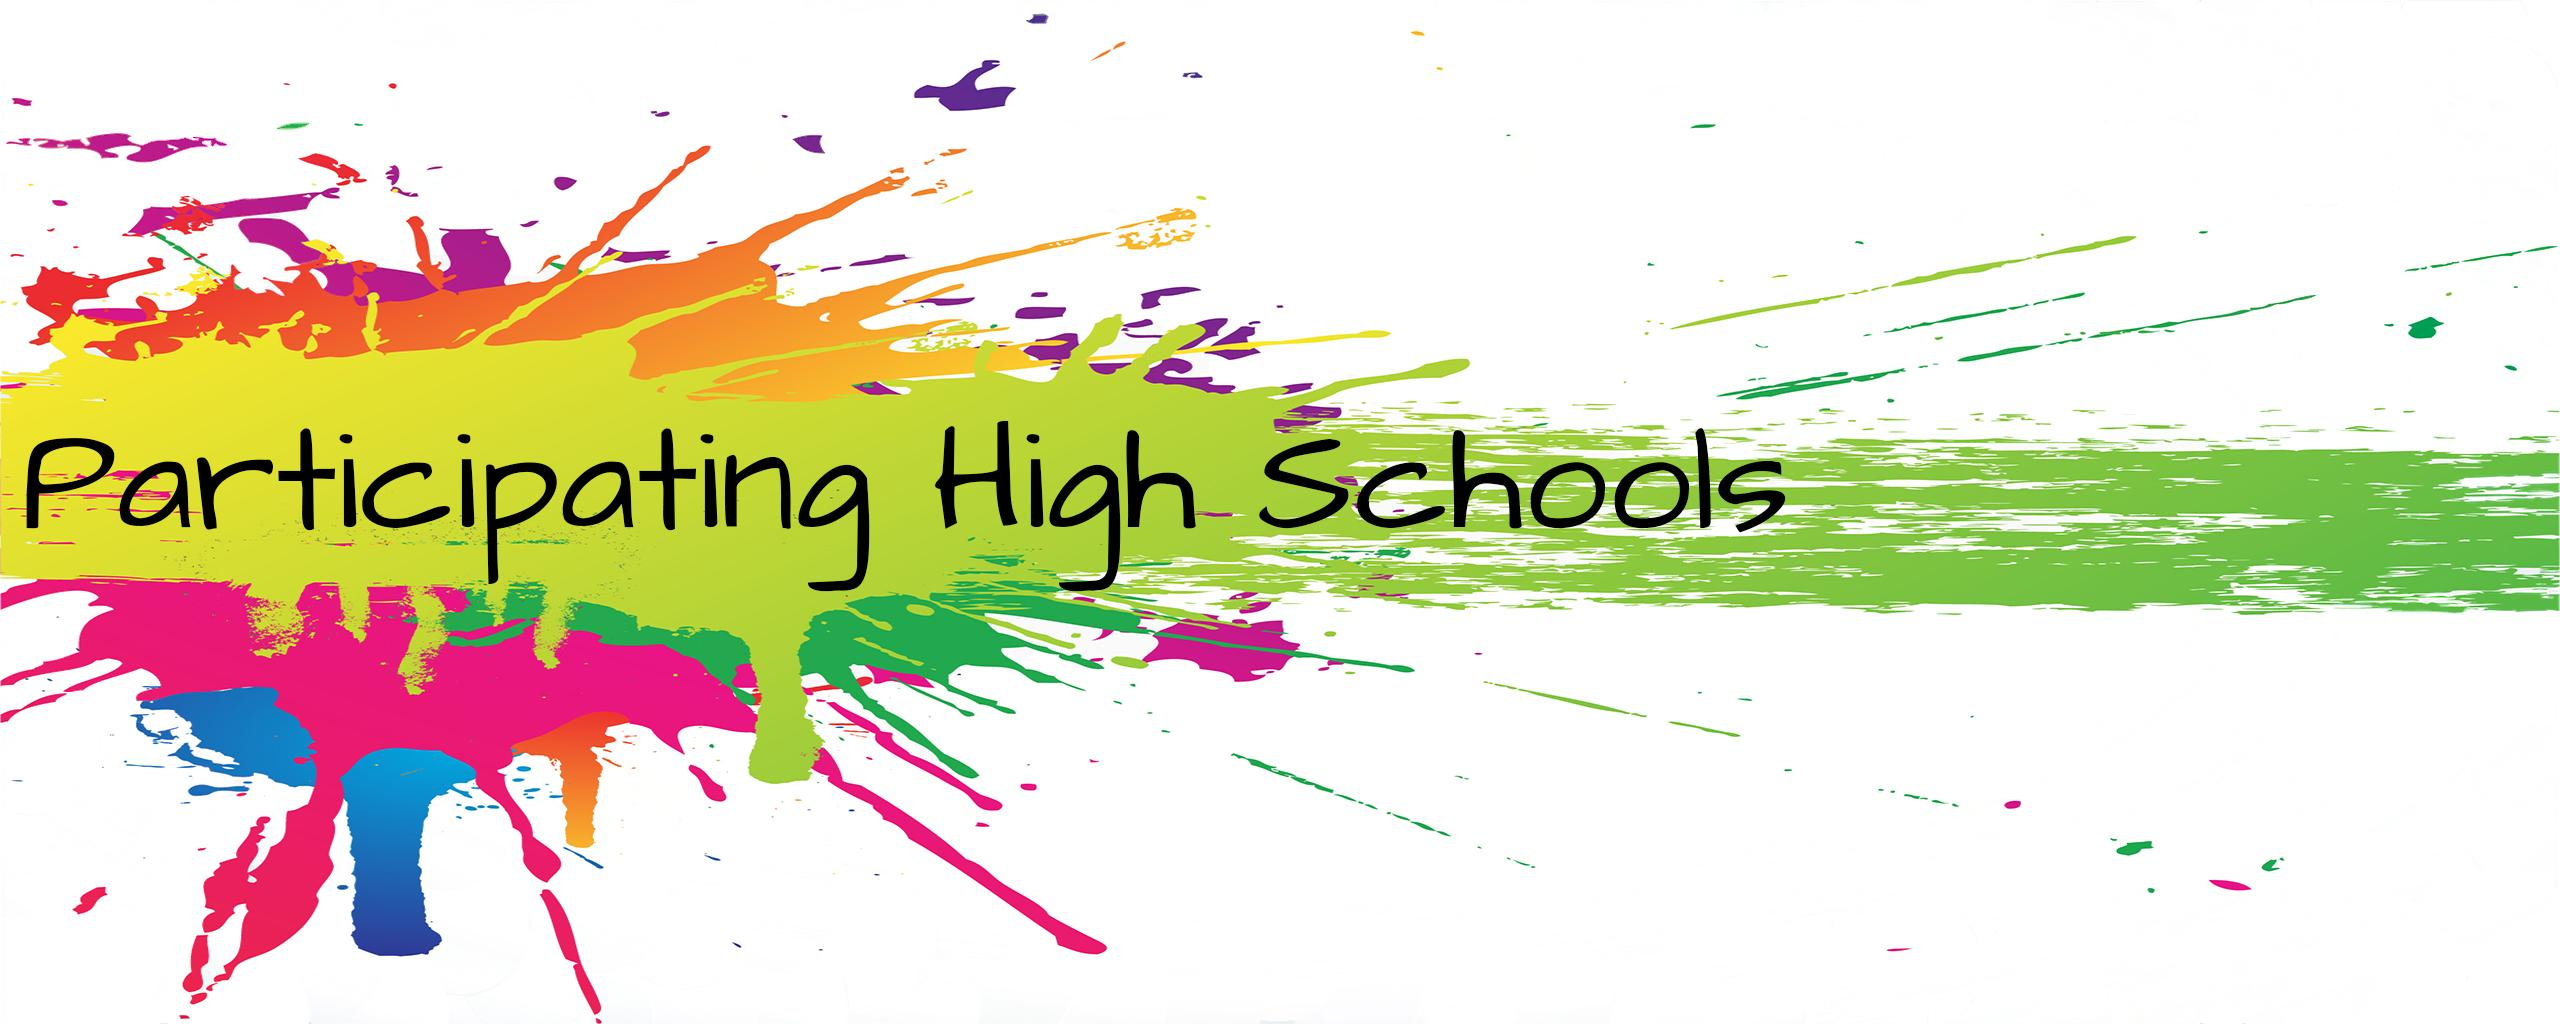 Participating High Schools